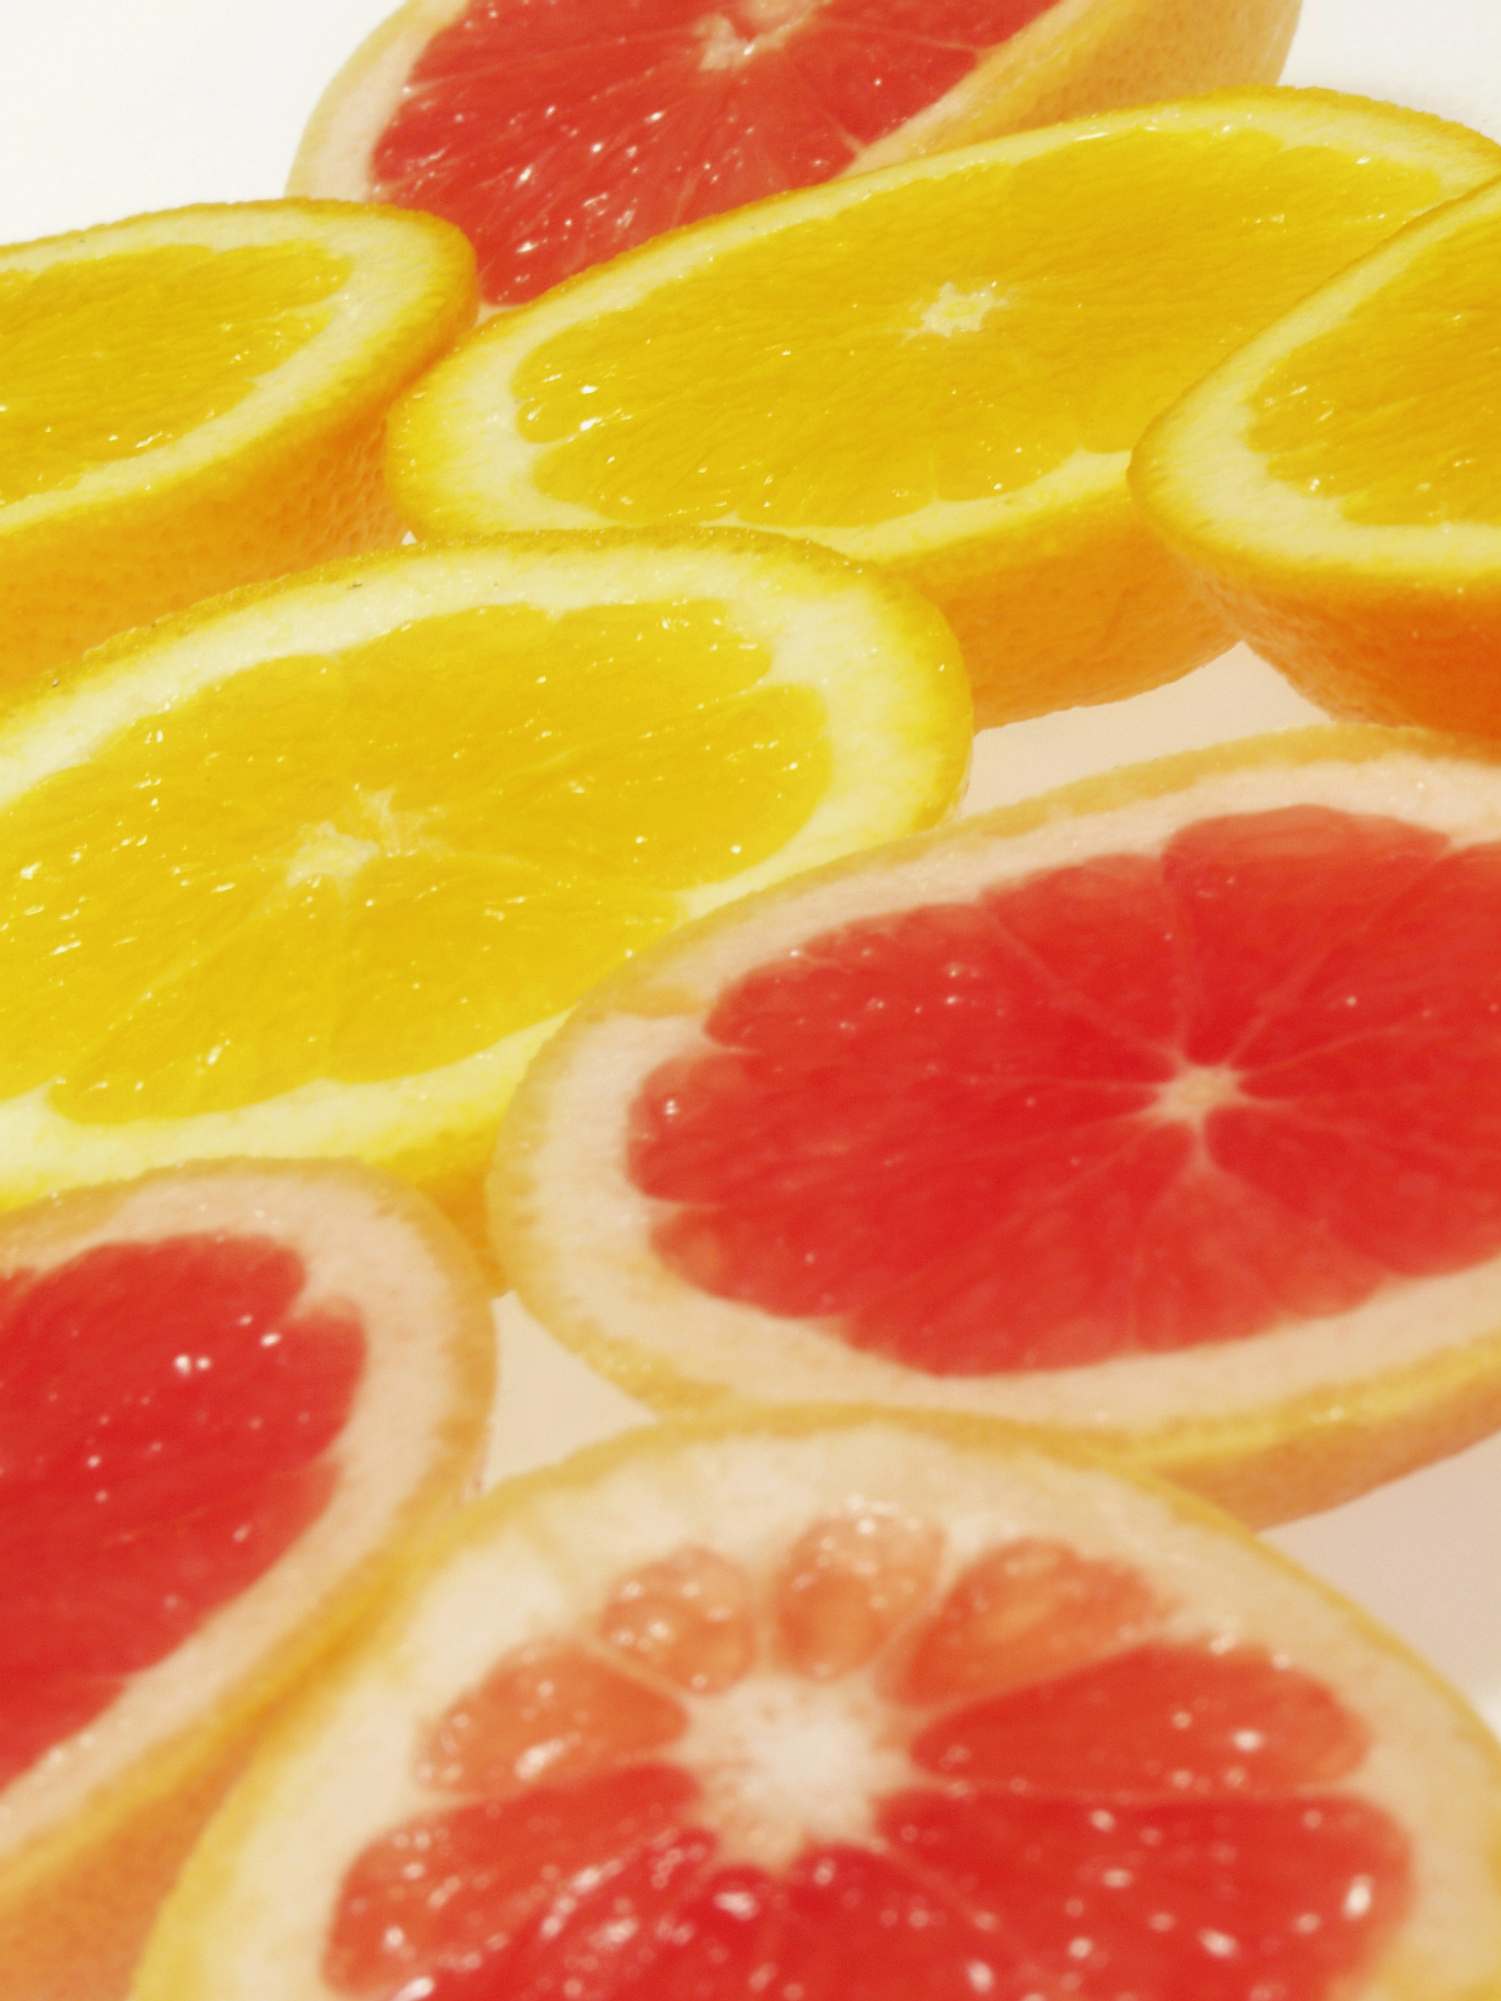 Grapefruit and orange juice both have a low-range glycemic index.